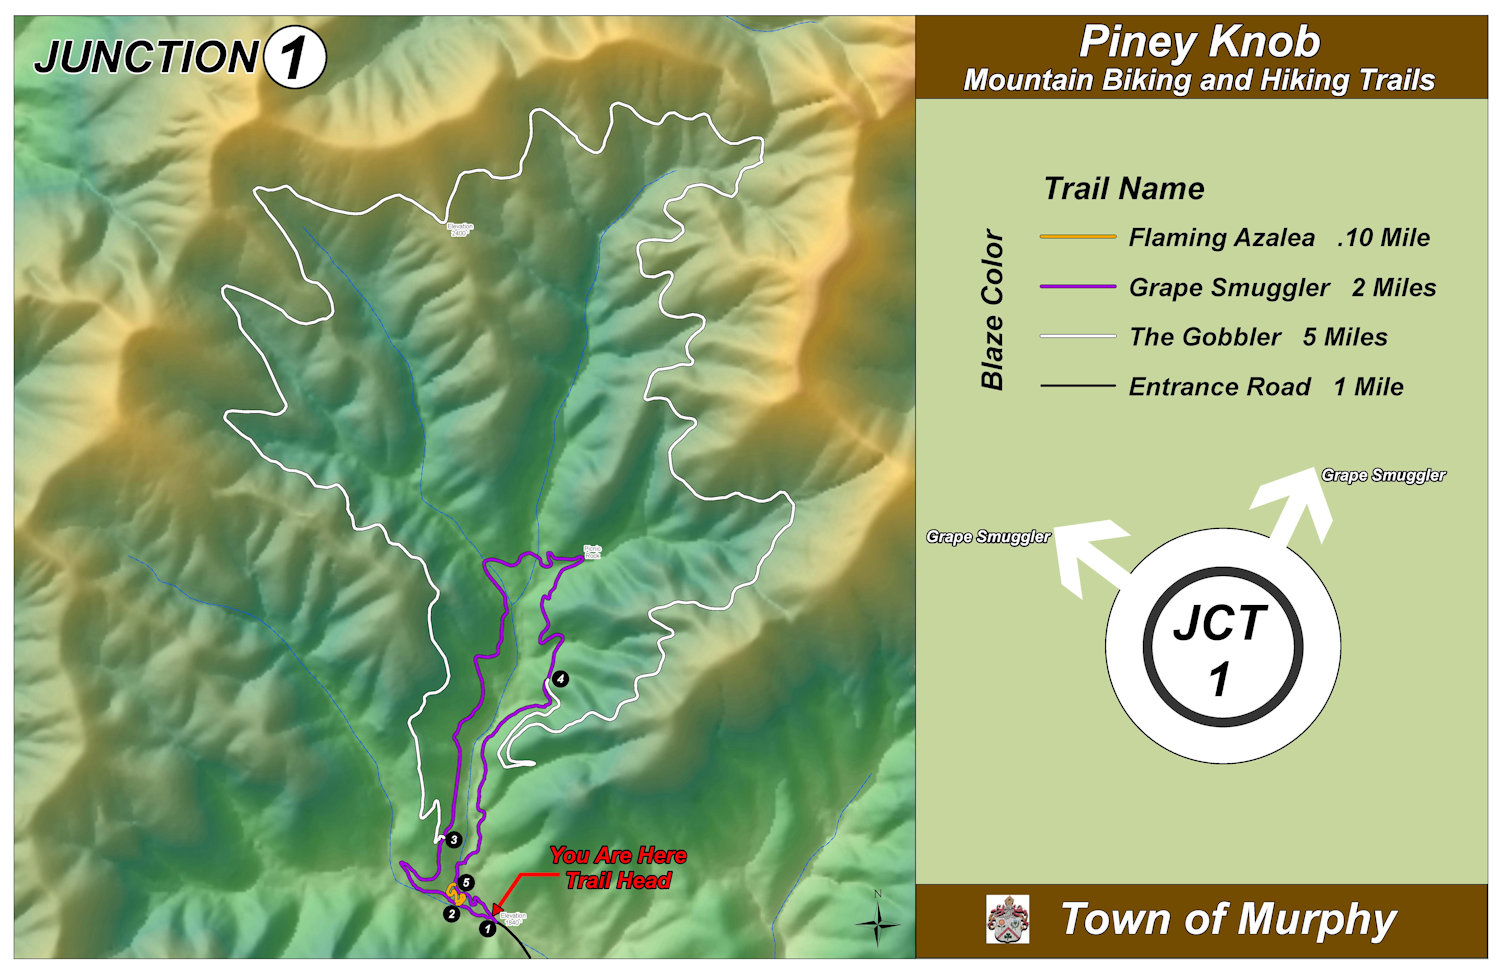 Piney Knob Trail Map - Murphy, NC